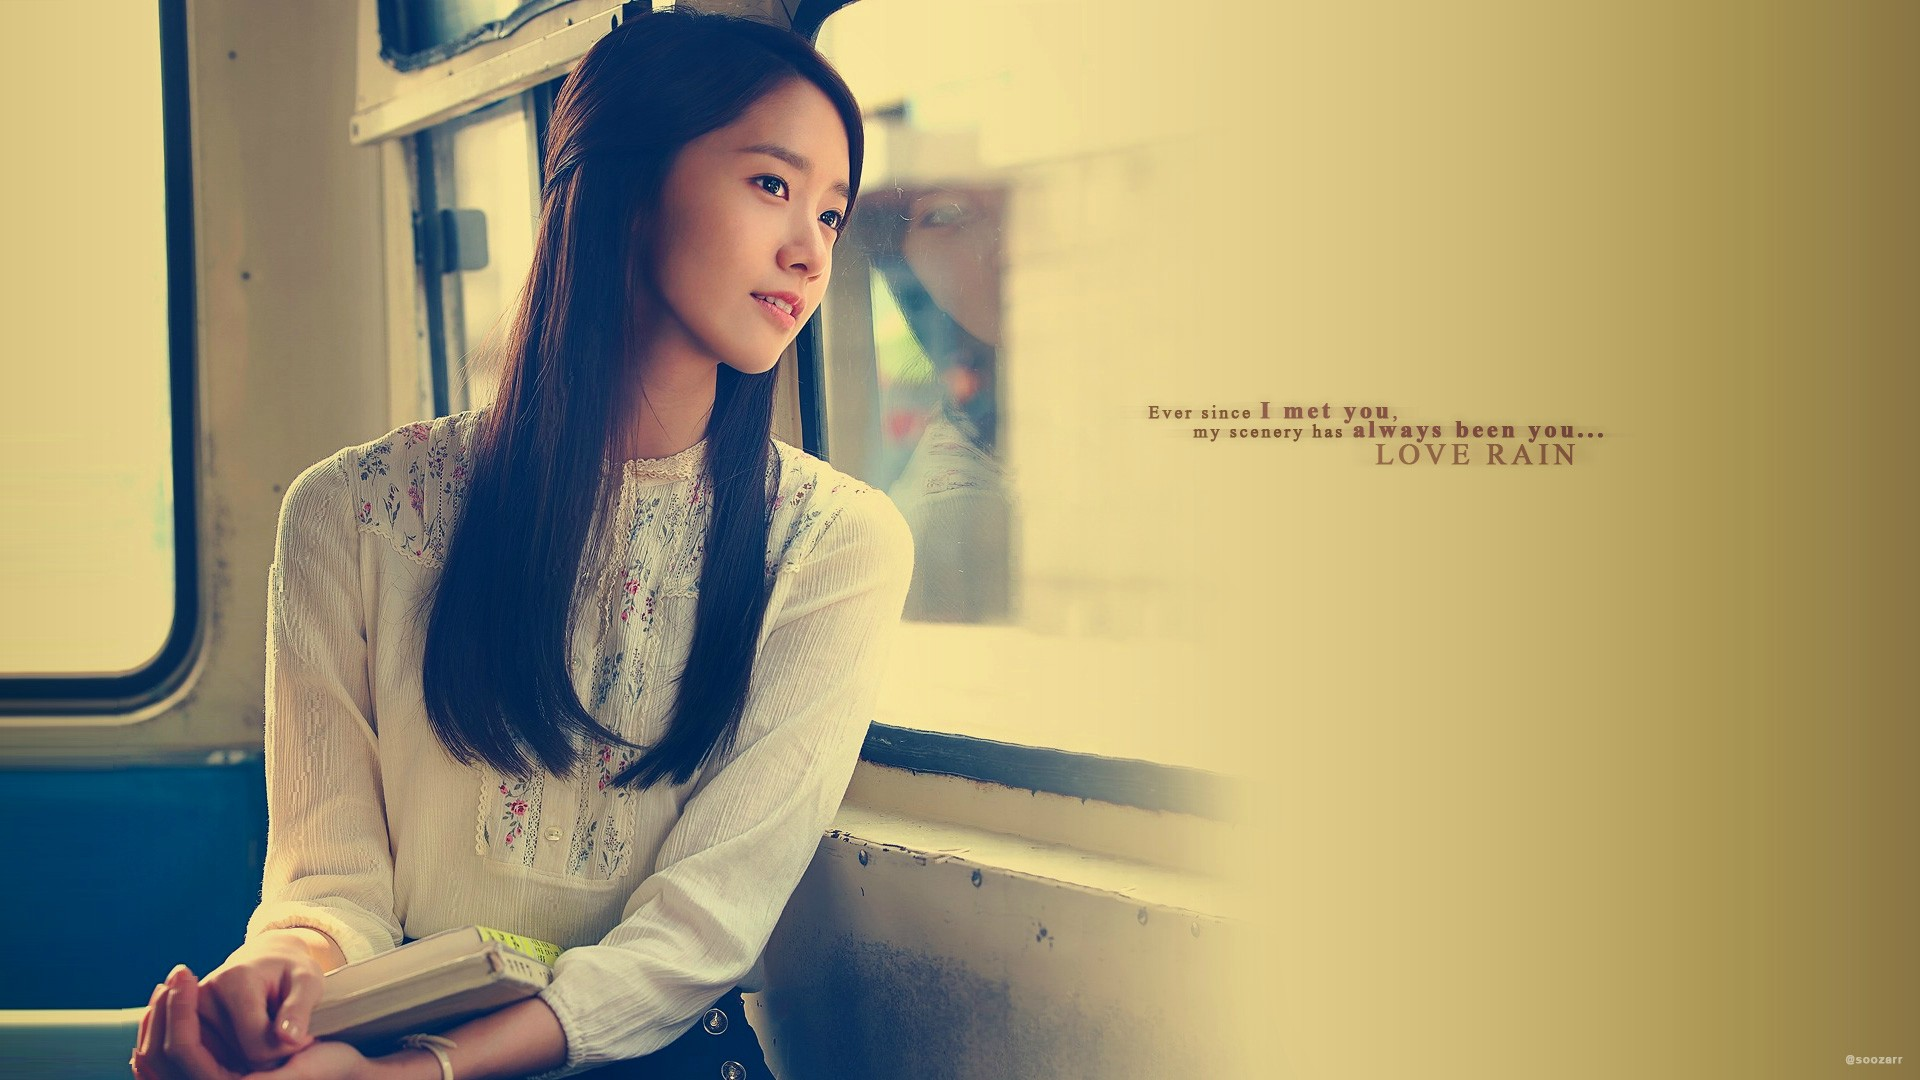 Love Rain Wallpaper Yoona Wallpapers 1920x1080px